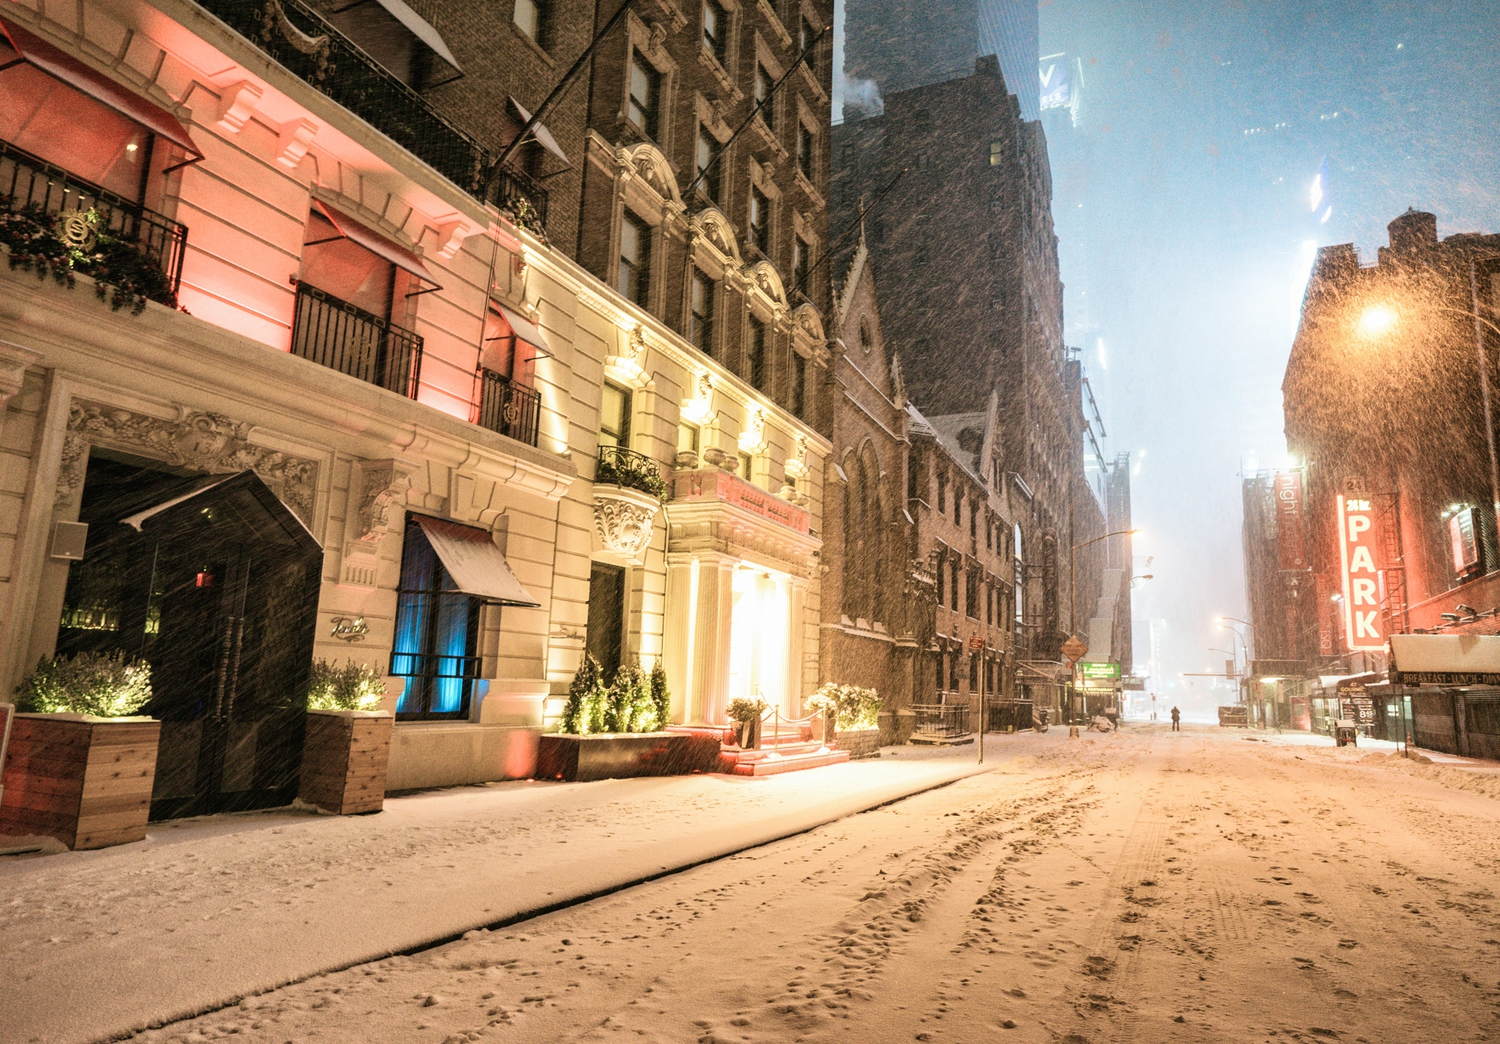 "New York City - Snow - Winter Storm Juno - Near Times Square | Juno: The first snowstorm of 2015 in New York City.  ---  (Note: My <a href=""http://www.amazon.com/gp/product/1440339589/ref=as_li_tl?ie=UTF8&camp=1789&creative=9325&creativeASIN=1440339589&linkCode=as2&tag=nyththle0e-20&linkId=ER6GYT5FRYNMEPLF"" rel=""nofollow"">New York photography book</a> released worldwide in stores/online recently and has photos similar to this  [full info below])  ---  I have been photographing New York City during snowstorms at night for the past 5 years. When it comes to experiencing <a href=""http://nythroughthelens.com/tagged/snow"" rel=""nofollow"">New York City in the snow</a>, I relish the challenge. The more gusty, snowy, and brutal the storm, the more of a chance that I will be out in it traipsing around New York City with my cameras in tow.  When I heard that the MTA was suspending all transit service (and most vehicles) at 11 pm, I made the decision to take the train up to the Upper East Side prior to 11 pm to deposit myself up there with the intention of walking from the Upper East Side to Times Square and then walking the several miles back to the Lower East Side (whew!!).  The streets were eerily empty.  Emptier than they are usually at night during snowfall. Since there was a ban on all vehicles aside from snow plows and emergency services, there were practically no cars at all on the streets. Even taxis were banned from the streets!  I walked in the middle of avenues and streets that are usually teeming with cars.  There was an eerie sense of calm.  It was magical.   ---  This is part of a post that I posted to my NYC photography blog. If you are curious enough to look at the photos there, here is the link to the post:  <a href=""http://nythroughthelens.com/post/109291619025/new-york-city-snow-winter-storm-juno-i"" rel=""nofollow"">New York City - Winter Storm Juno</a>   ----  * As mentioned above - My New York City coffee table book that released in stores/online worldwide recently.   Tons of information about my <a href=""http://www.amazon.com/gp/product/1440339589/ref=as_li_tl?ie=UTF8&camp=1789&creative=9325&creativeASIN=1440339589&linkCode=as2&tag=nyththle0e-20&linkId=ER6GYT5FRYNMEPLF"" rel=""nofollow"">New York photography book</a> with sample pages (including where to order and what stores are carrying it) here:  <a href=""http://nythroughthelens.com/post/92873566010/ny-through-the-lens-the-book-i-am-super"" rel=""nofollow"">NY Through The Lens: A New York Coffee Table Book</a> ---   View my New York City photography at my website <a href=""http://nythroughthelens.com/"" rel=""nofollow"">NY Through The Lens</a>.  View my Travel photography at my travel blog: <a href=""http://travelinglens.me/"" rel=""nofollow"">Traveling Lens</a>.  Interested in my work and have questions about PR and media? Check out my:  <a href=""http://nythroughthelens.com/about"" rel=""nofollow"">About Page</a> 